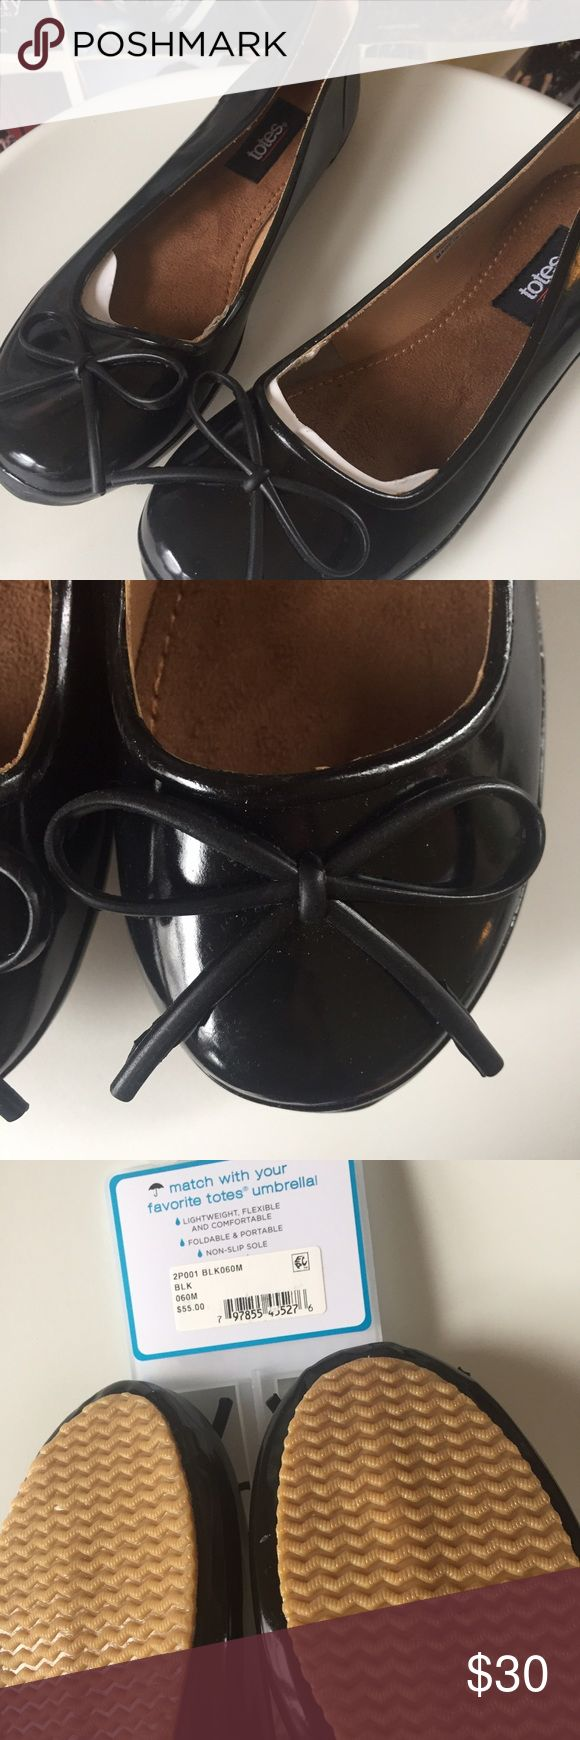 Totes Signature   Puddle Flats rain shoes  waterproof, these Puddle Flats from the rain-wear specialists at Totes are practical, but versatile in black. Nobody will even notice that they aren't regular ballet flats!! Could they be any cuter?! Marked 6-6.5. NWT. Totes Shoes Flats & Loafers